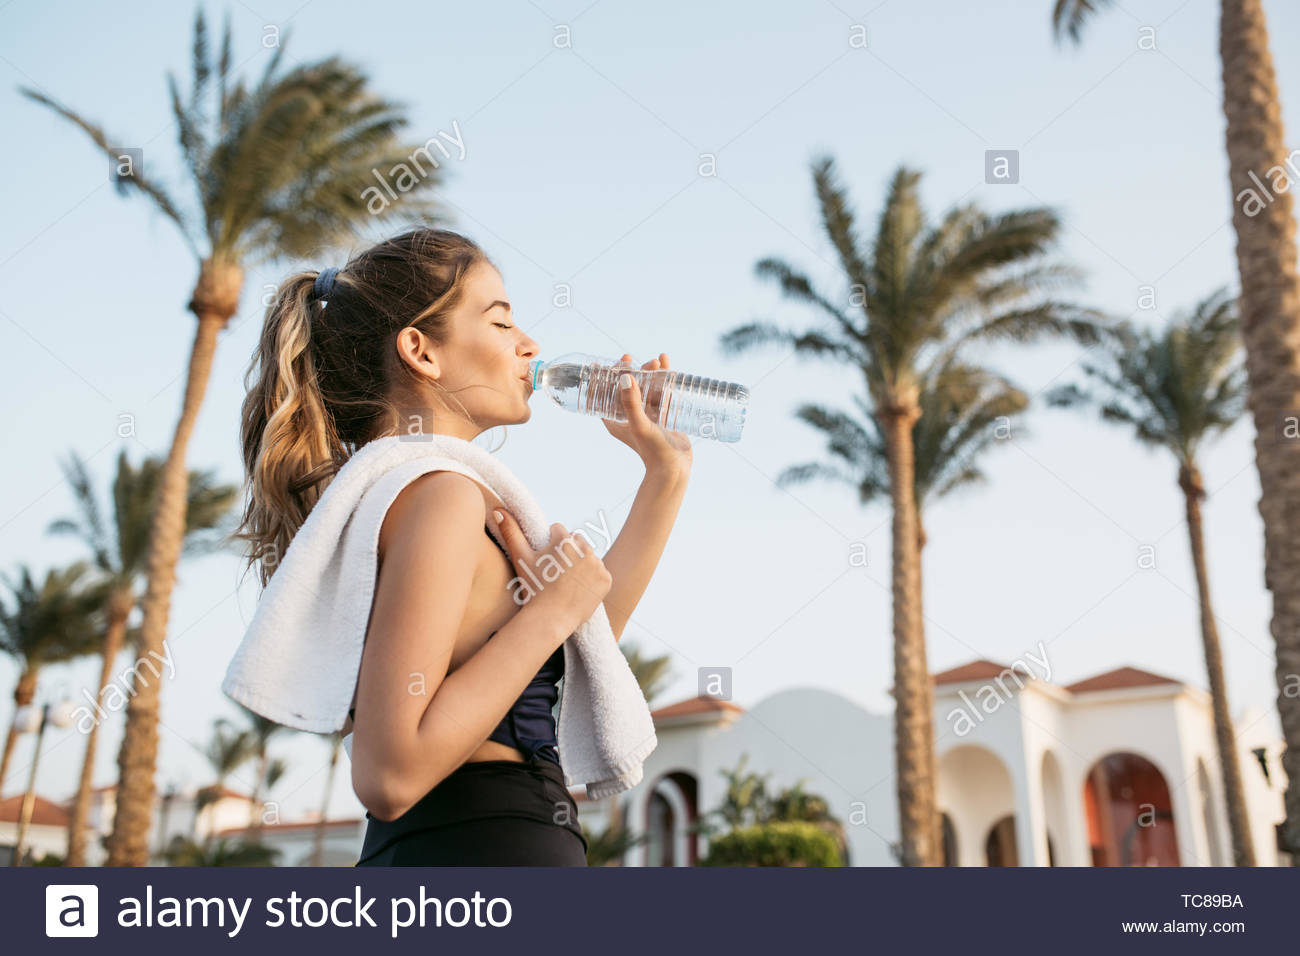 Portrait attractive young woman in sportswear drinking water from bottle on palms and sky background. Tropical city, sunny morning, relaxing with closed eyes, workout Stock Photo